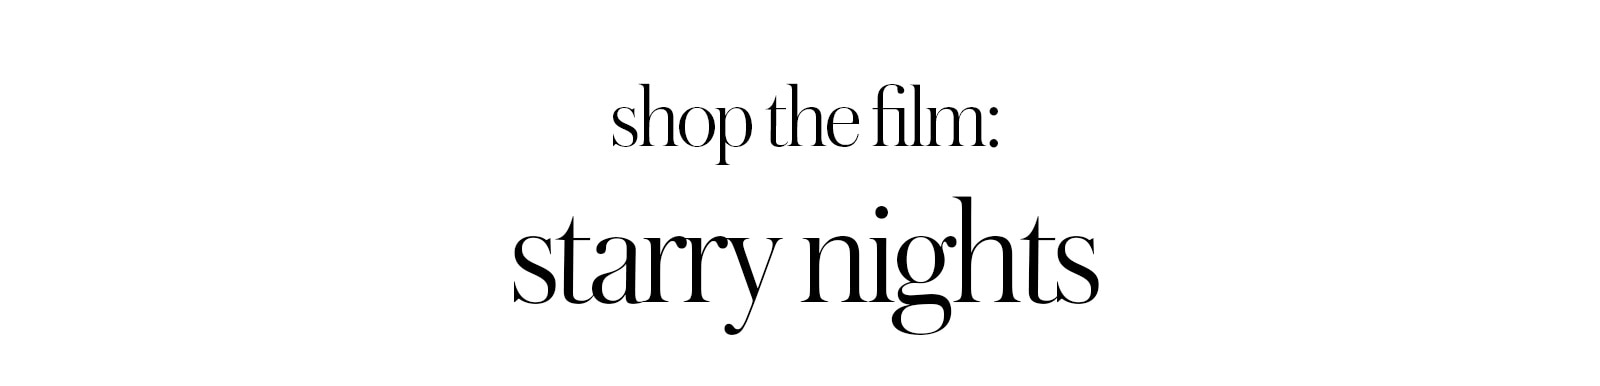 shop the film. starry nights